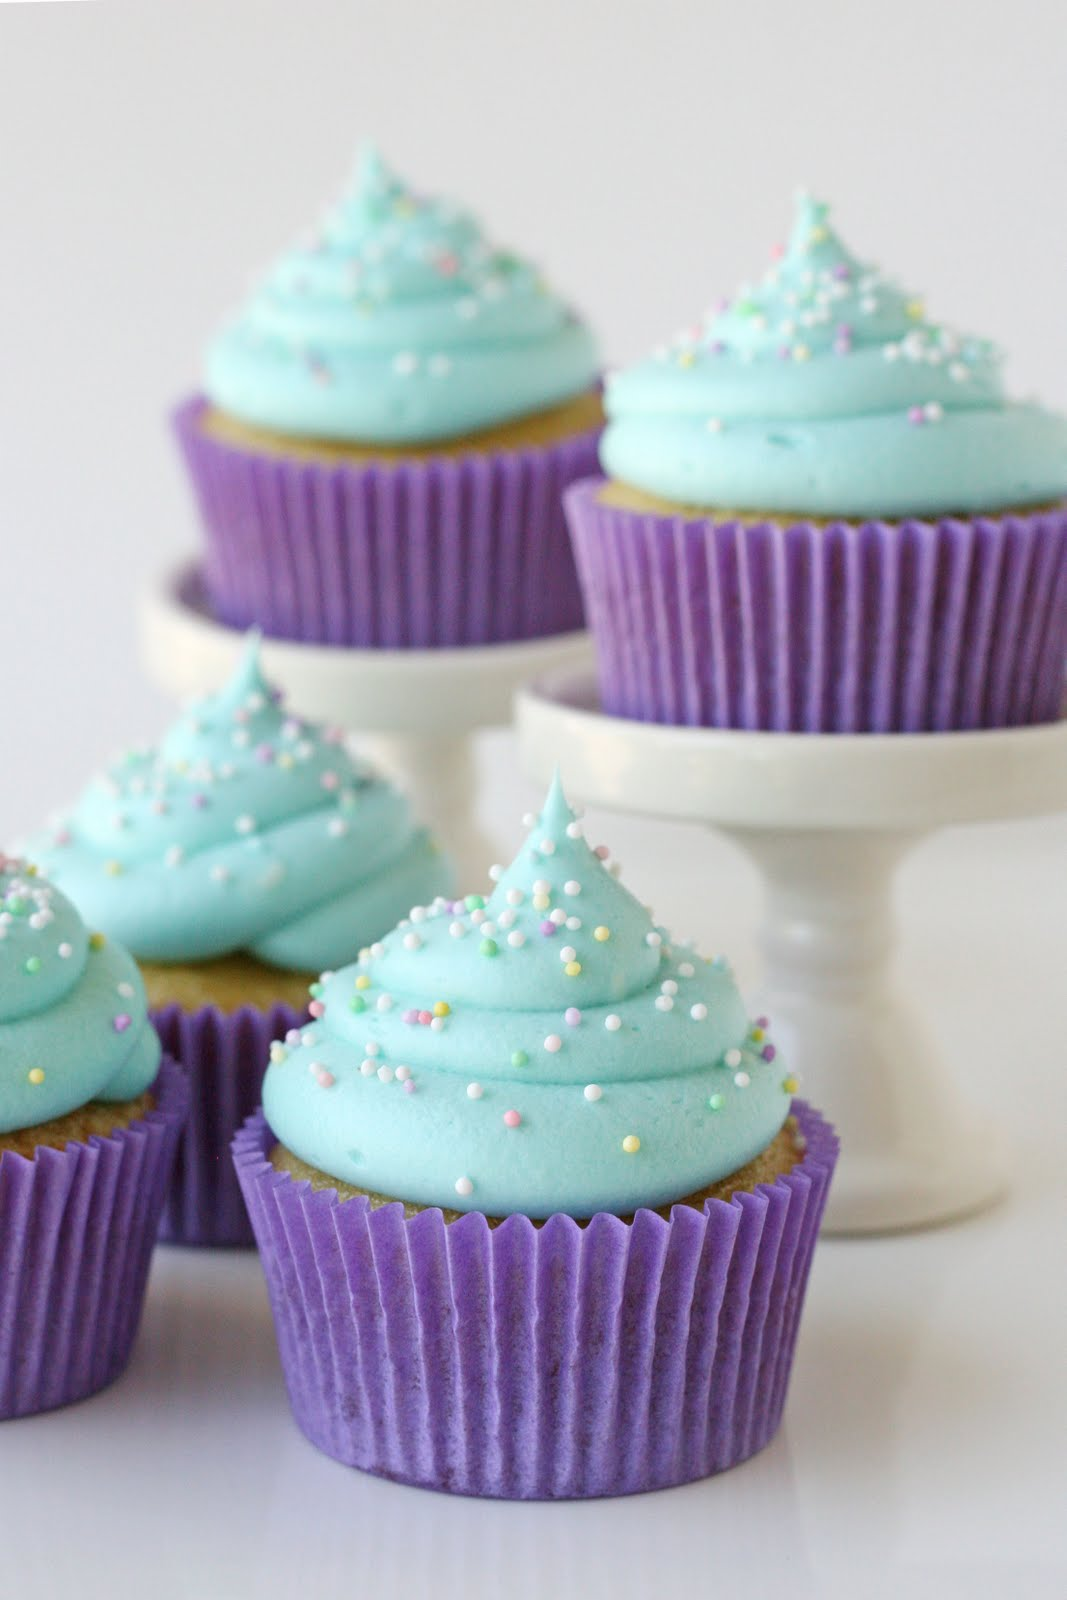 Best Buttercream Frosting Recipe For Fondant Cakes